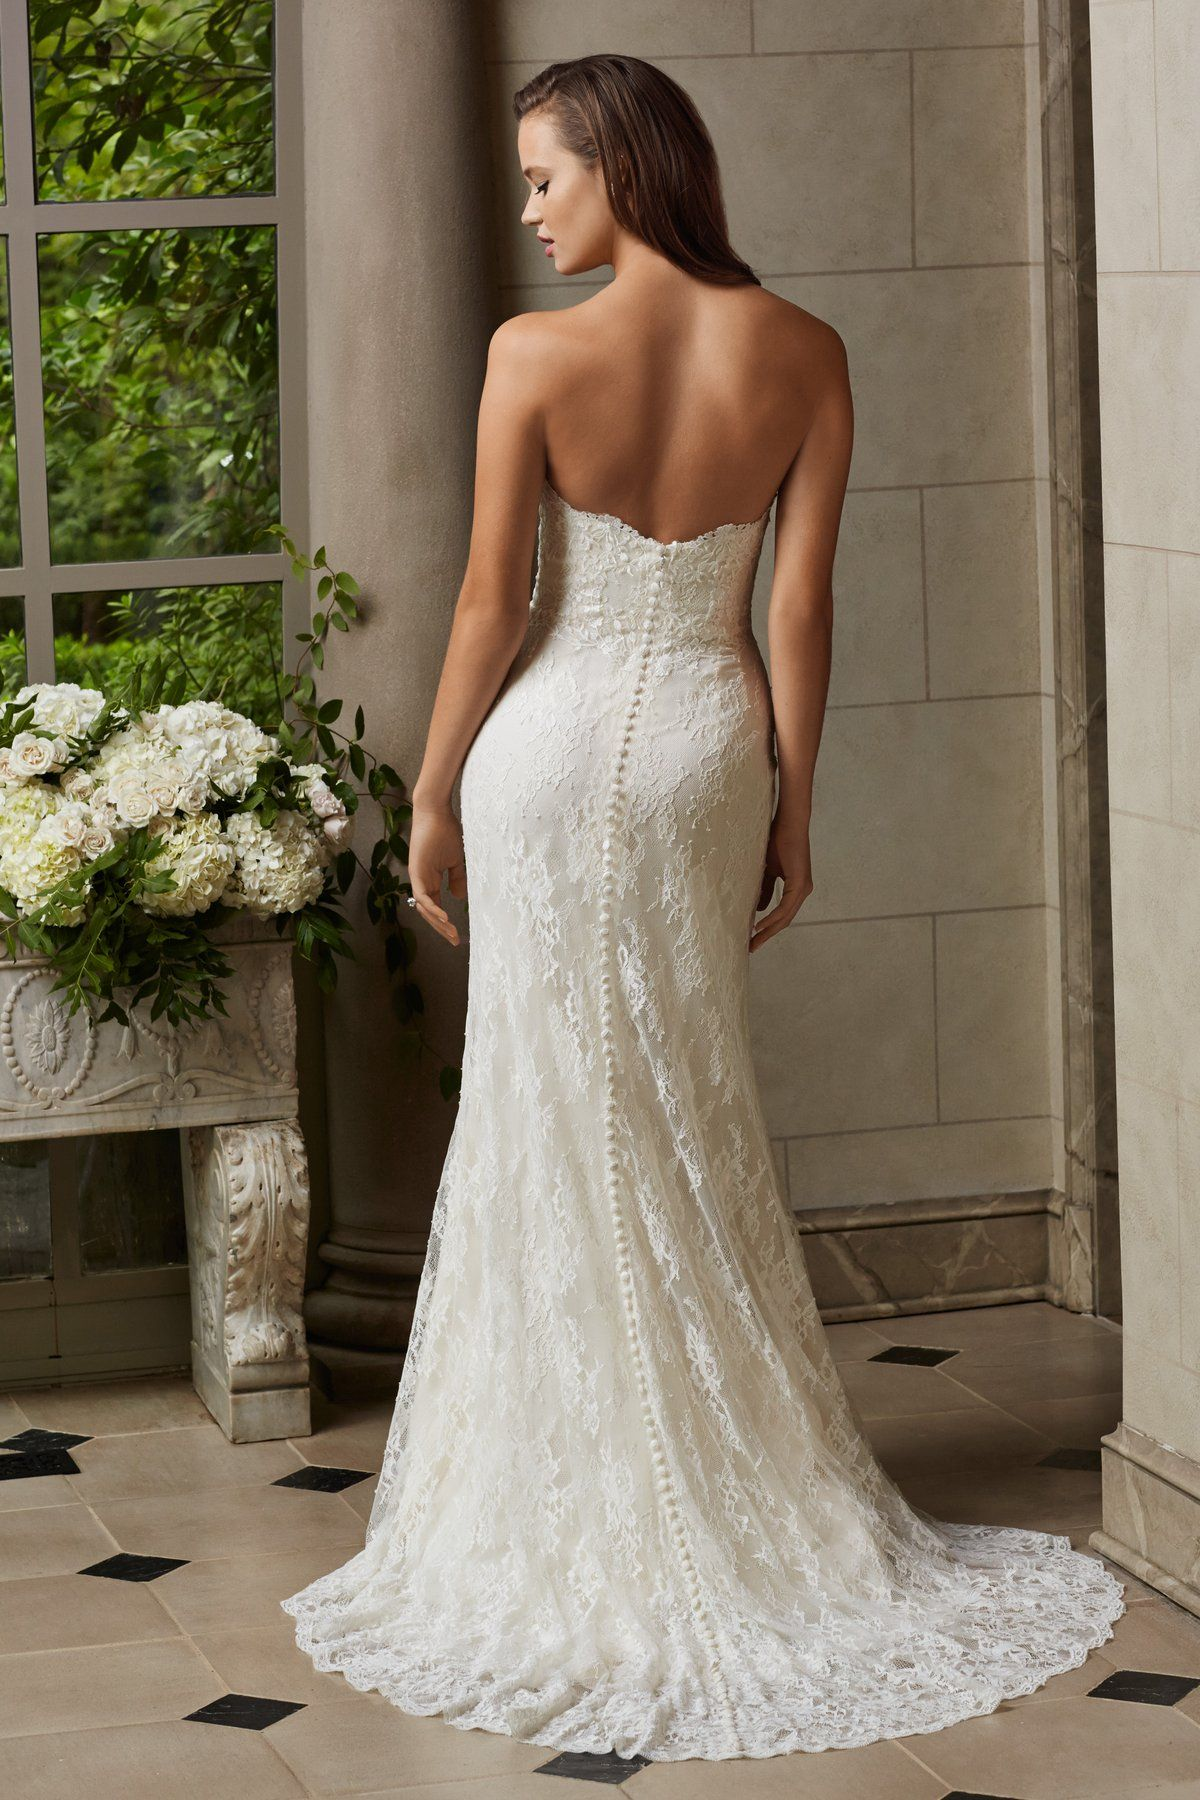 Wtoo Brides Michelle Gown Available at I Do Bridal!  Book Your Appointment today!  3164405949